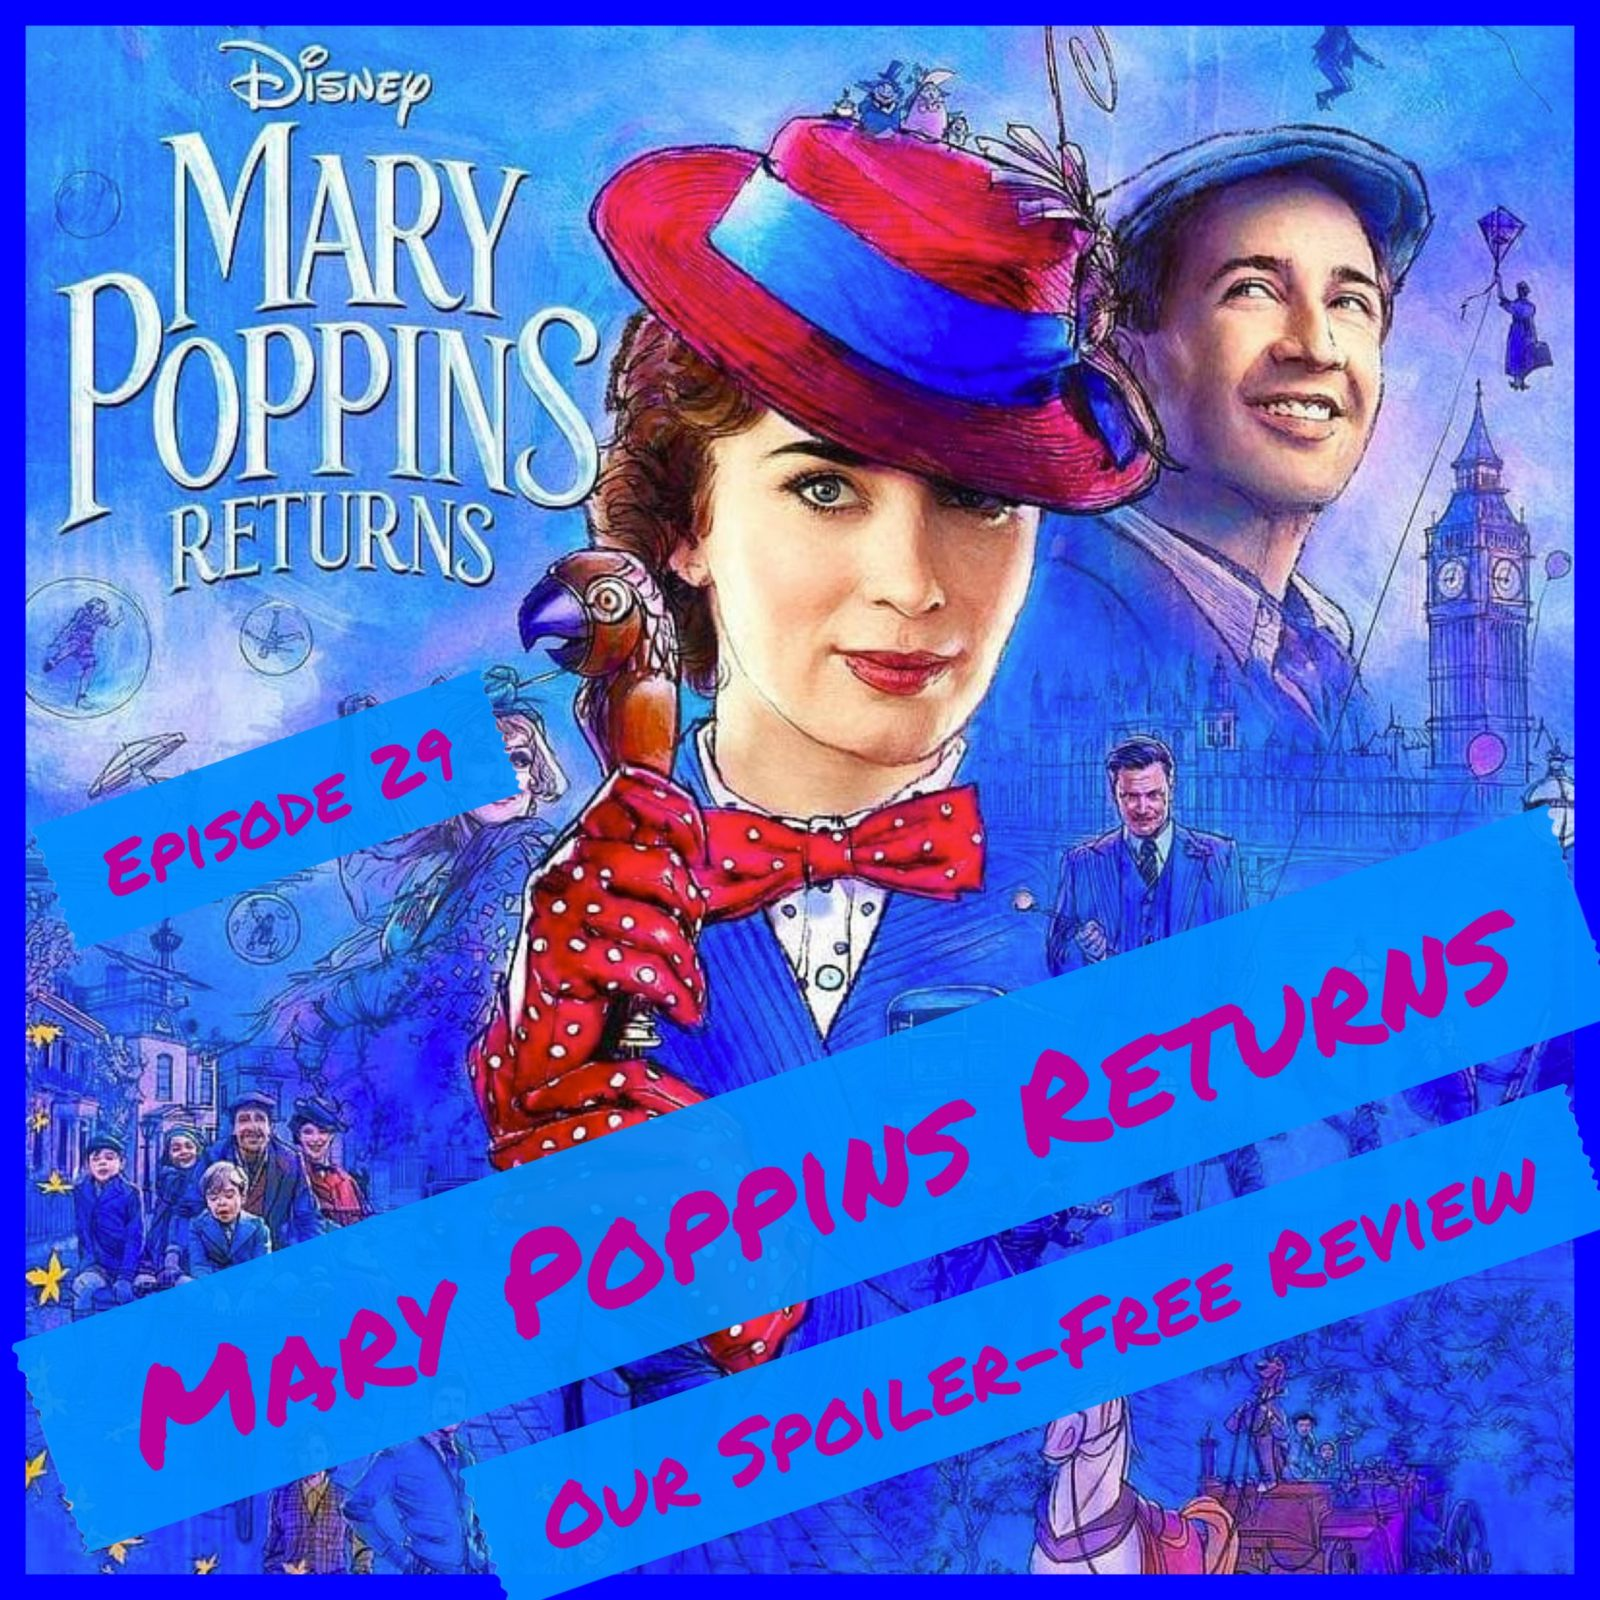 Mary Poppins Returns - Our Spoiler-Free Review